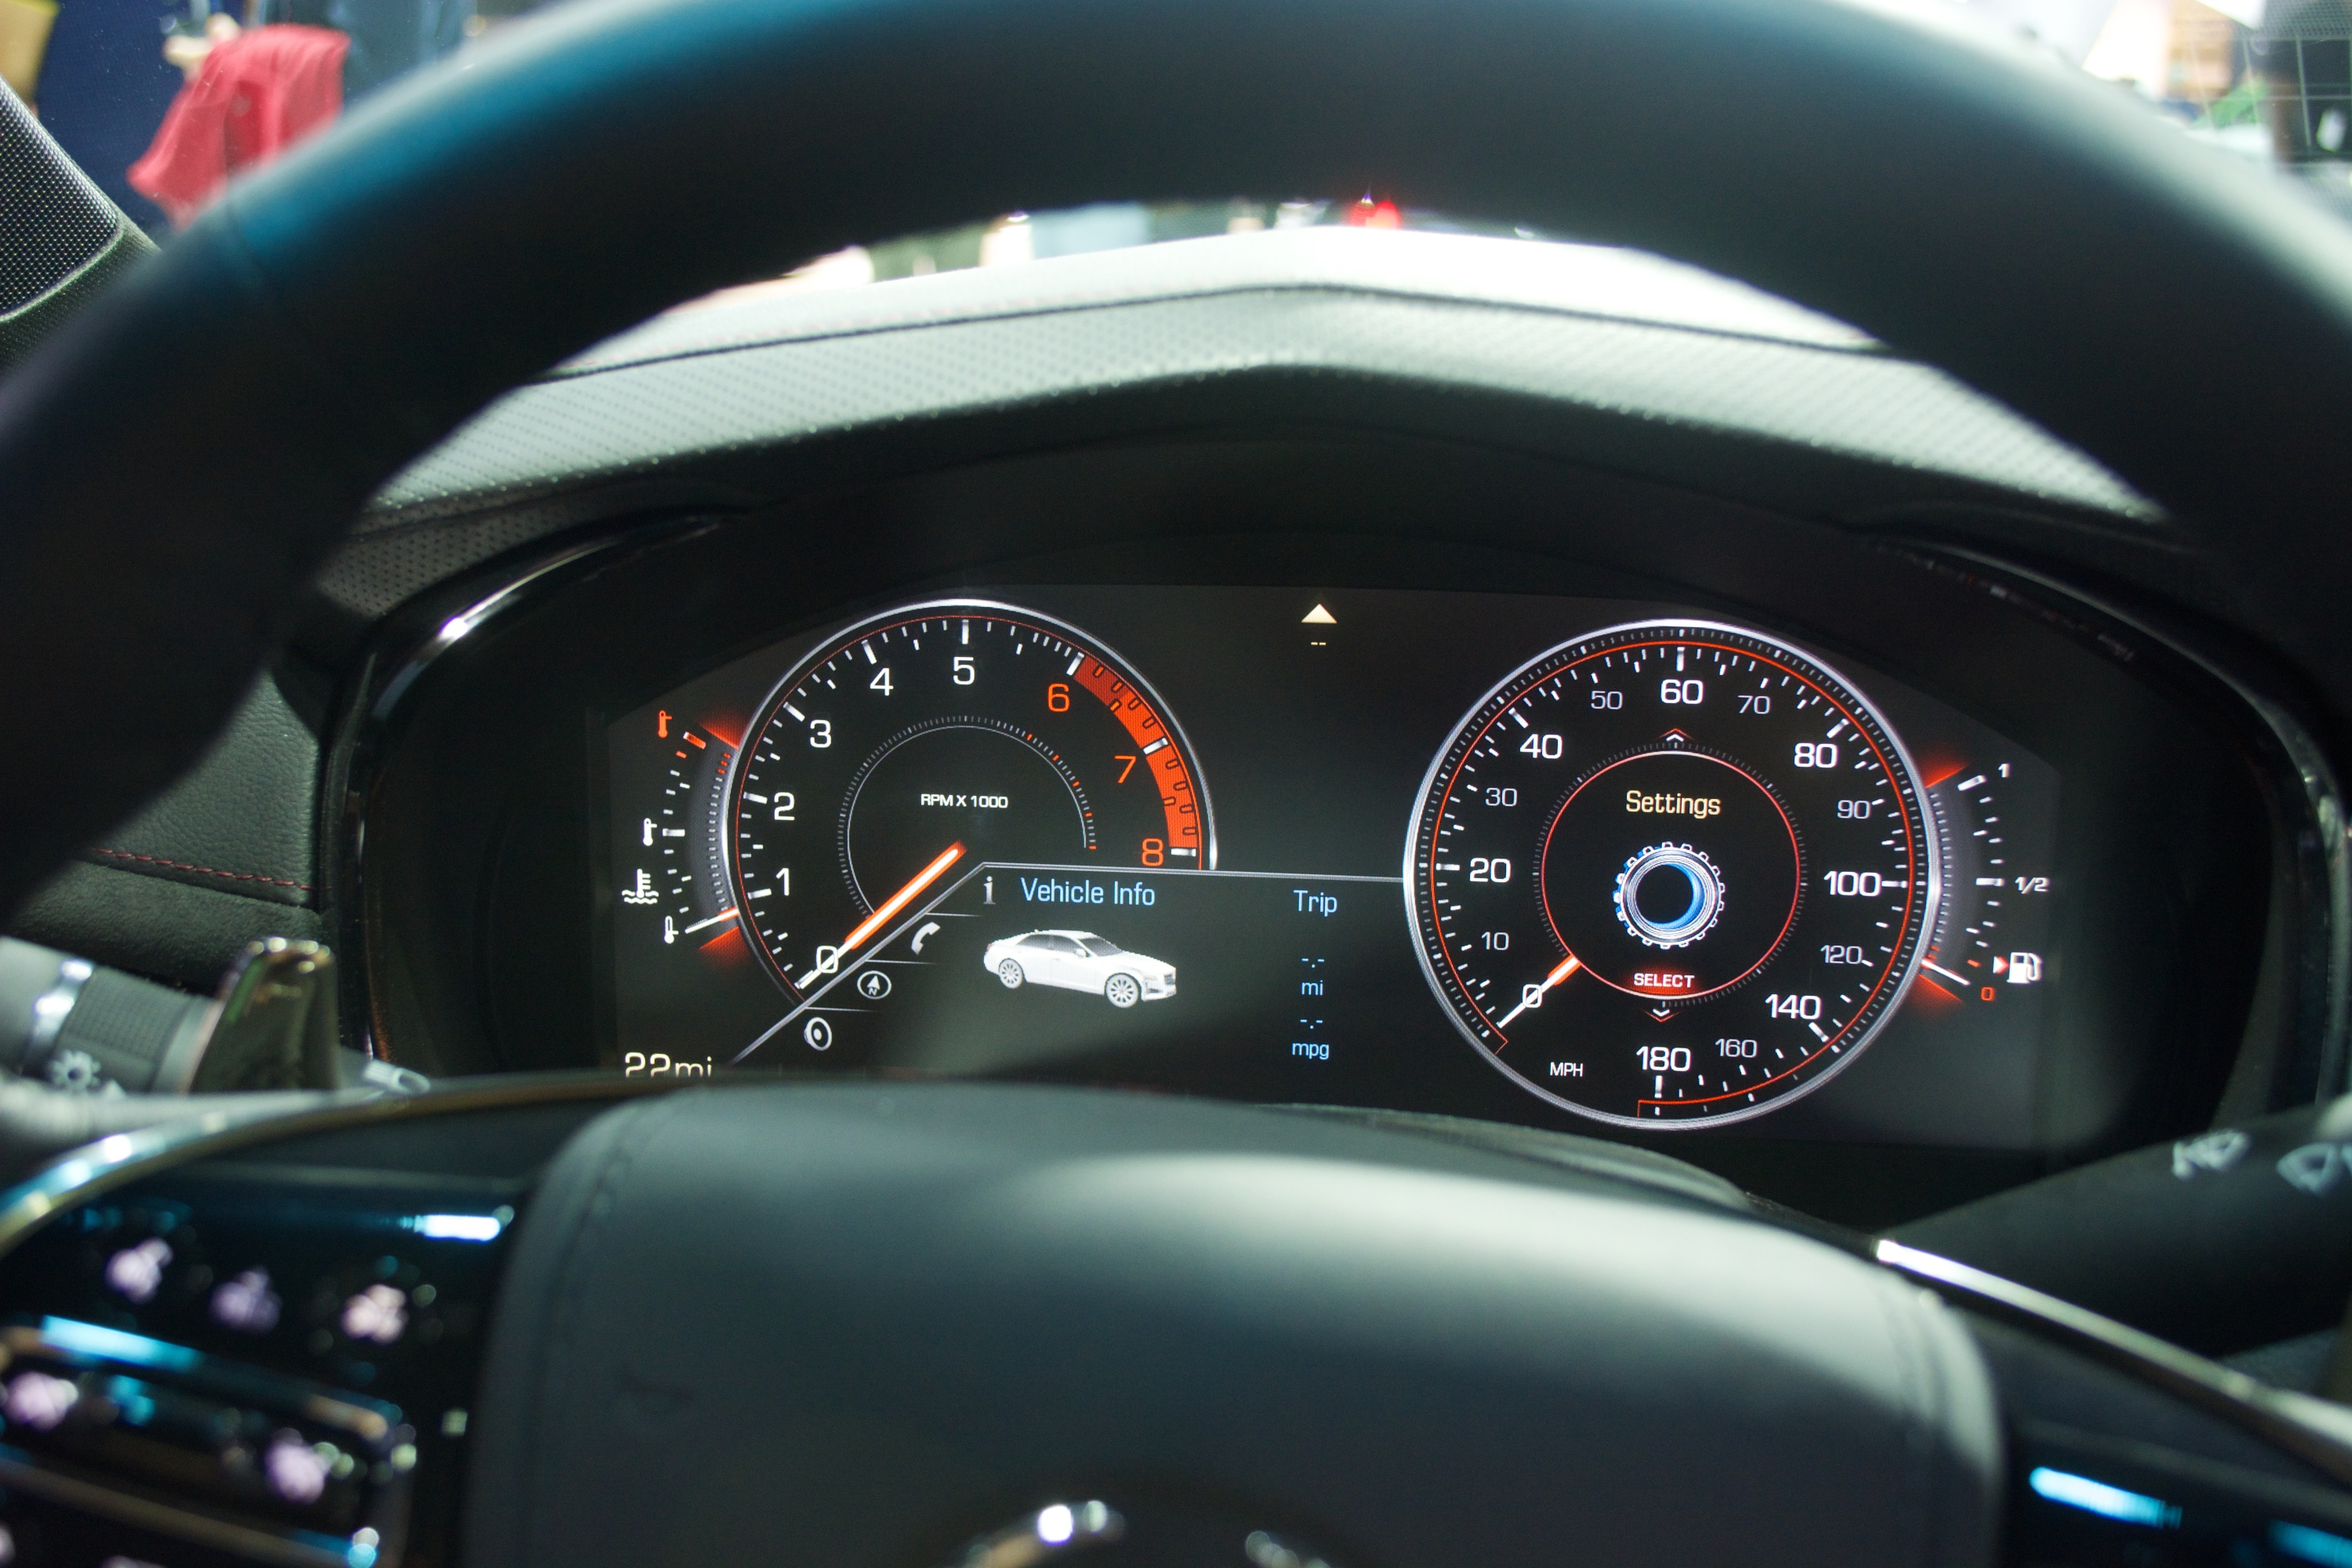 2014 Cadillac Cts V Coupe Review Notespricingspecsphotos